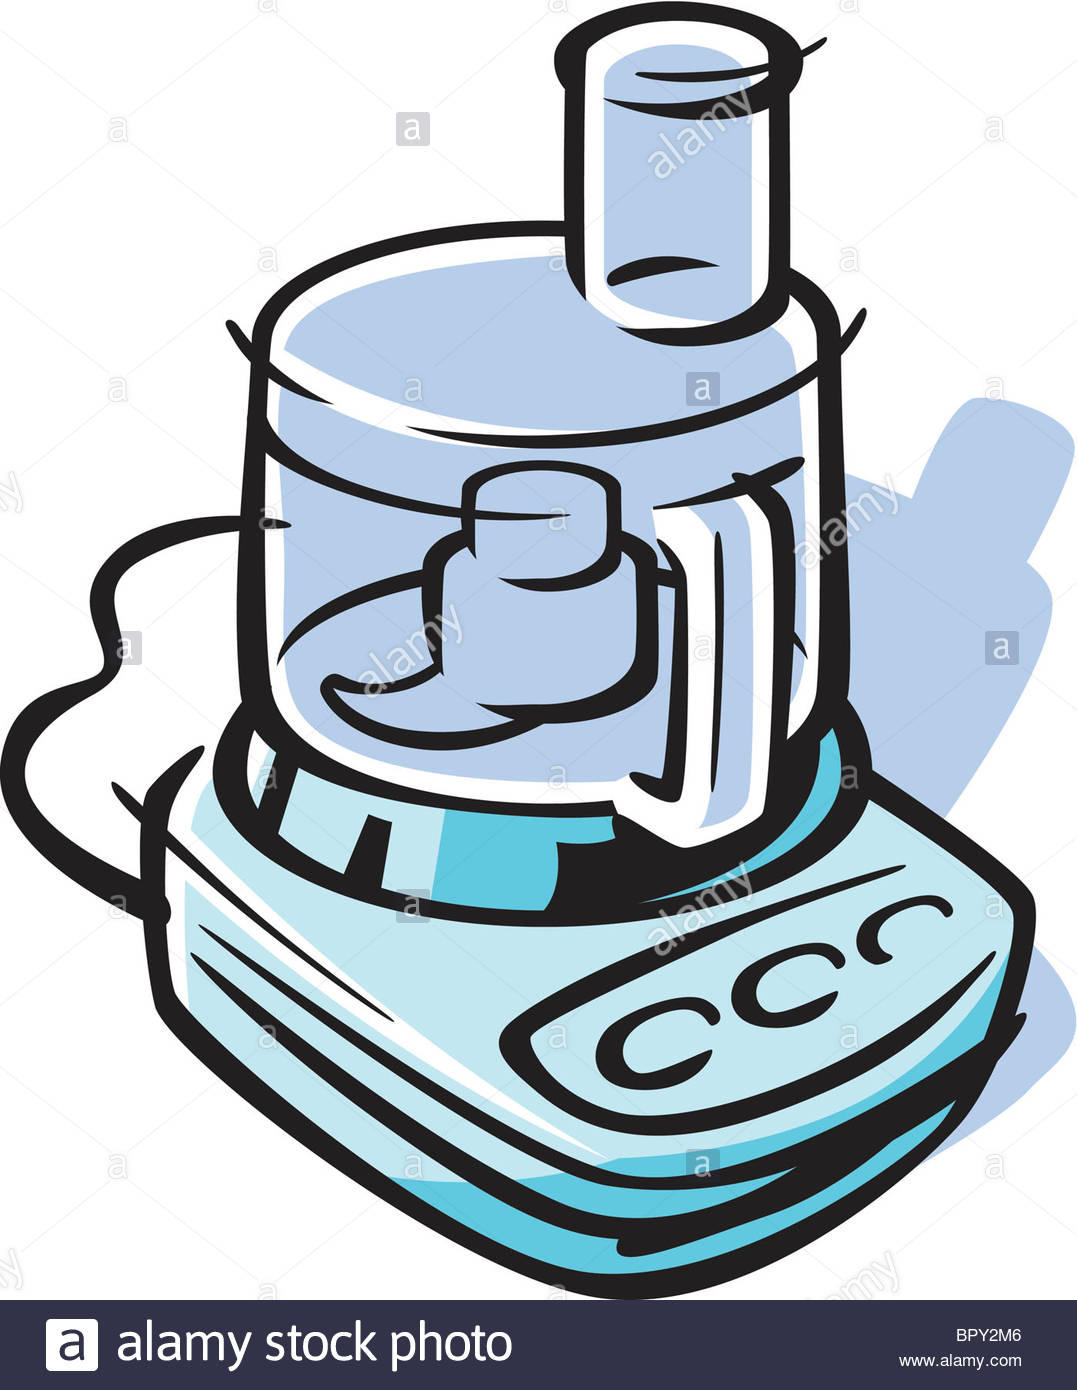 Drawing Of A Food Processor Stock Photo, Royalty Free Image.